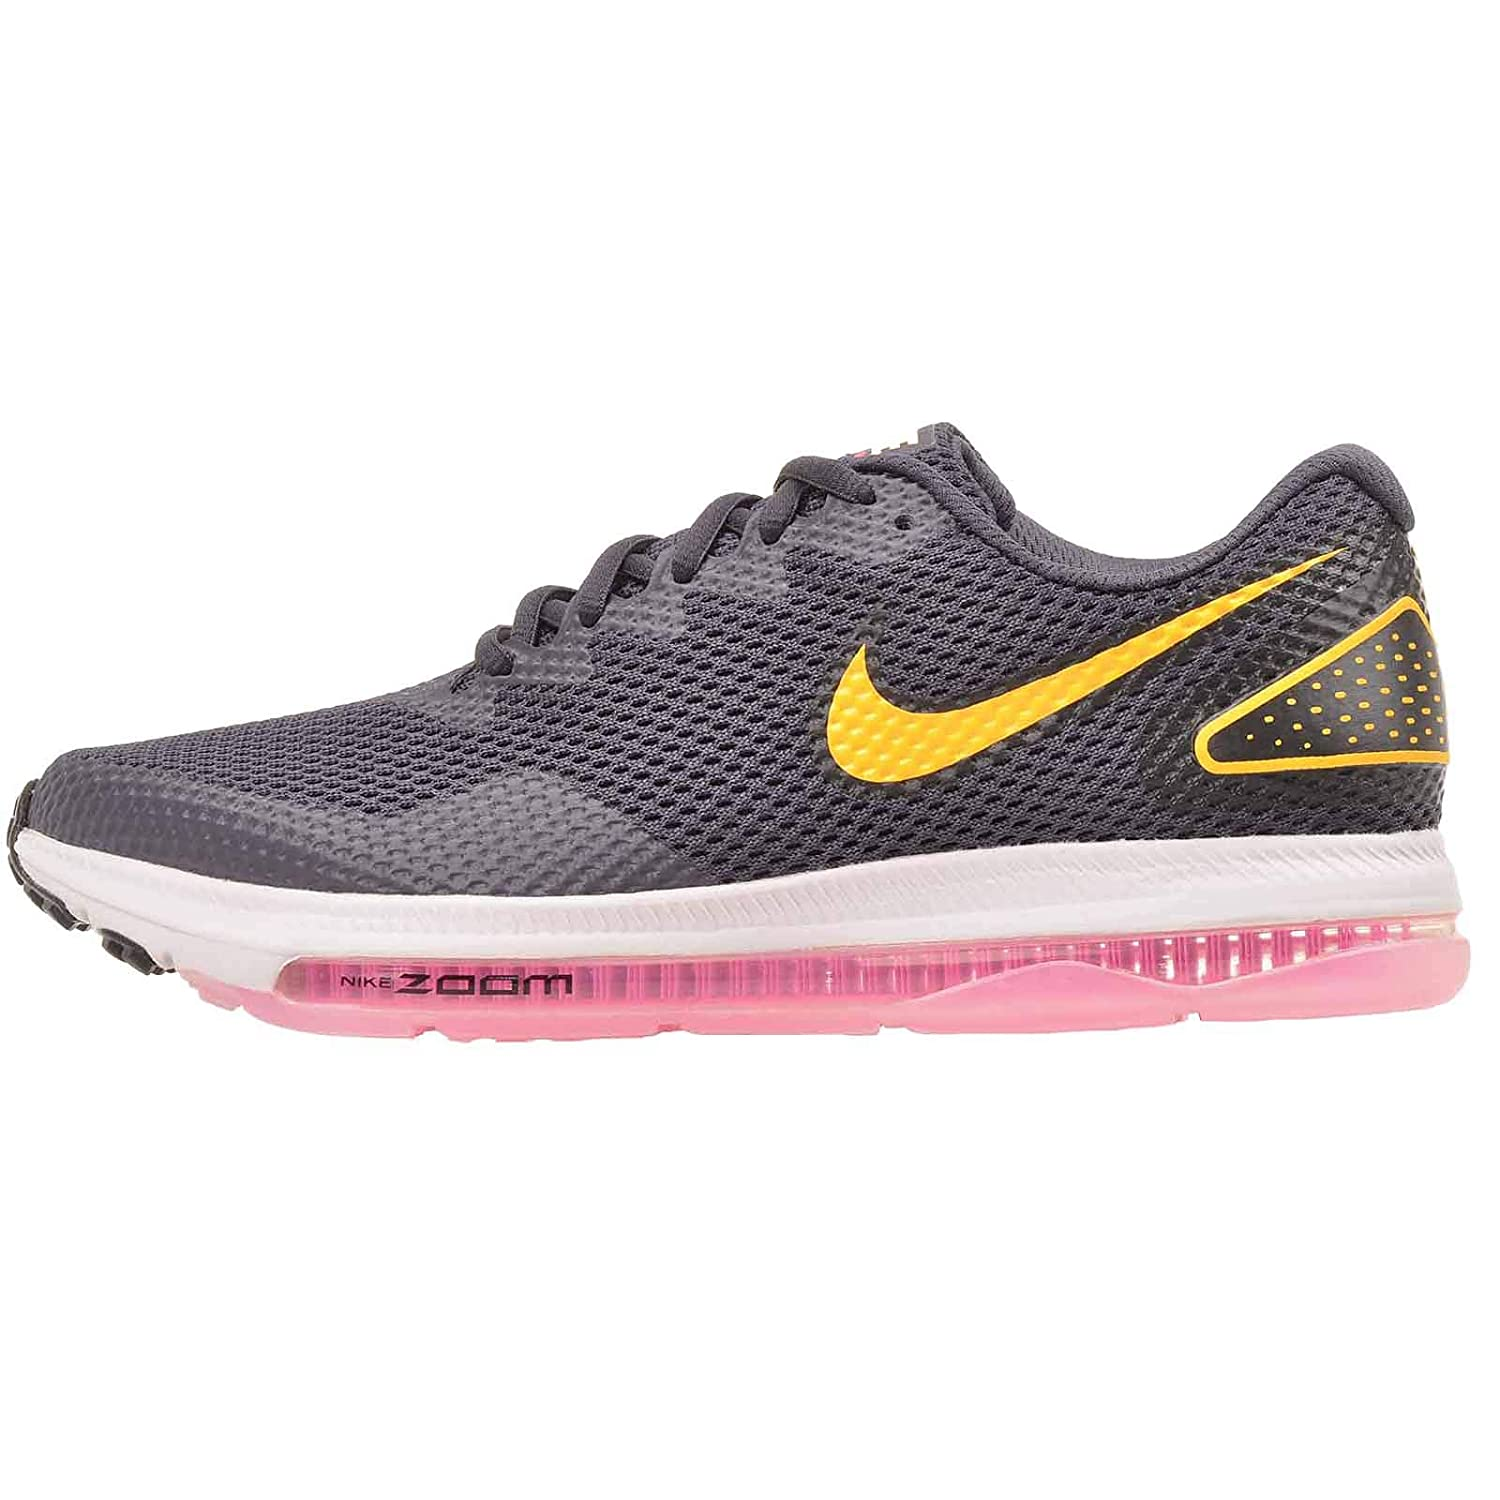 MultiCouleure (Gridiron Laser Orange noir 006) Nike W Zoom All Out Low 2, Chaussures de Running Compétition Femme 44.5 EU